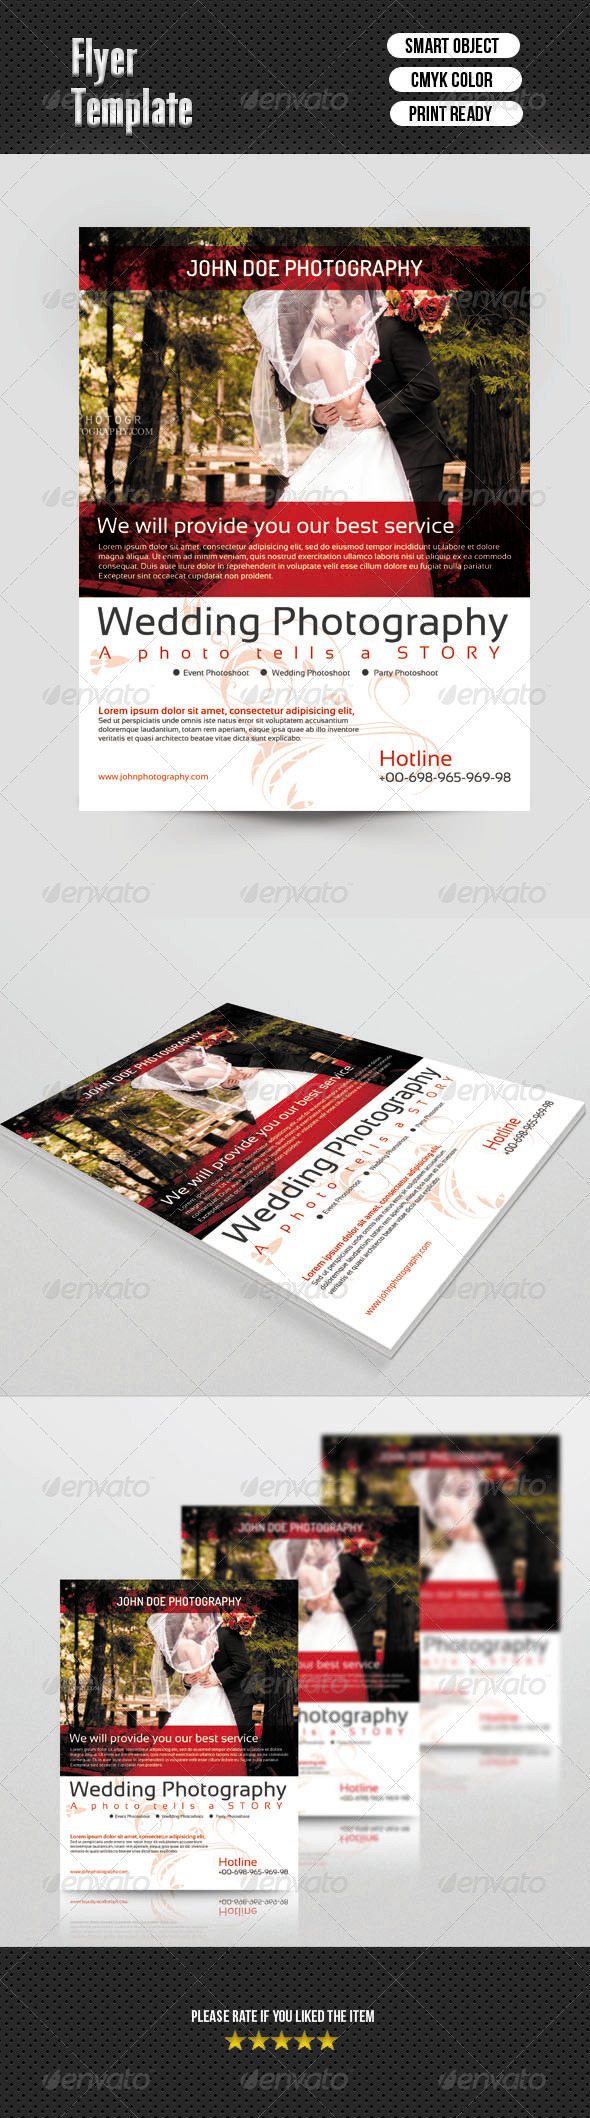 Flyer for Wedding Photographer - Corporate Flyers